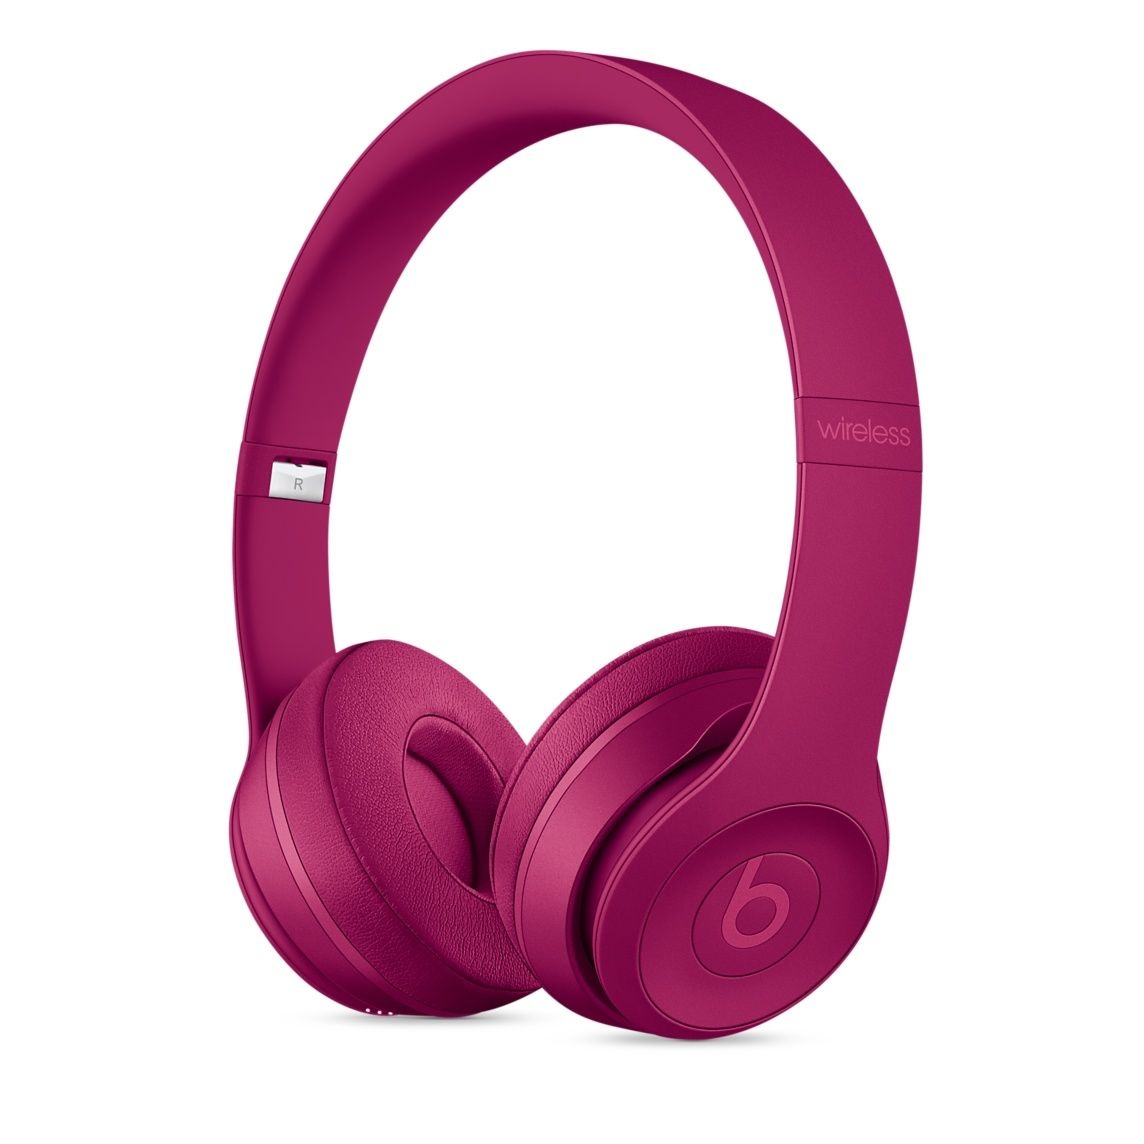 Up Your Game With This Beats Solo3 Wireless Headphone From The